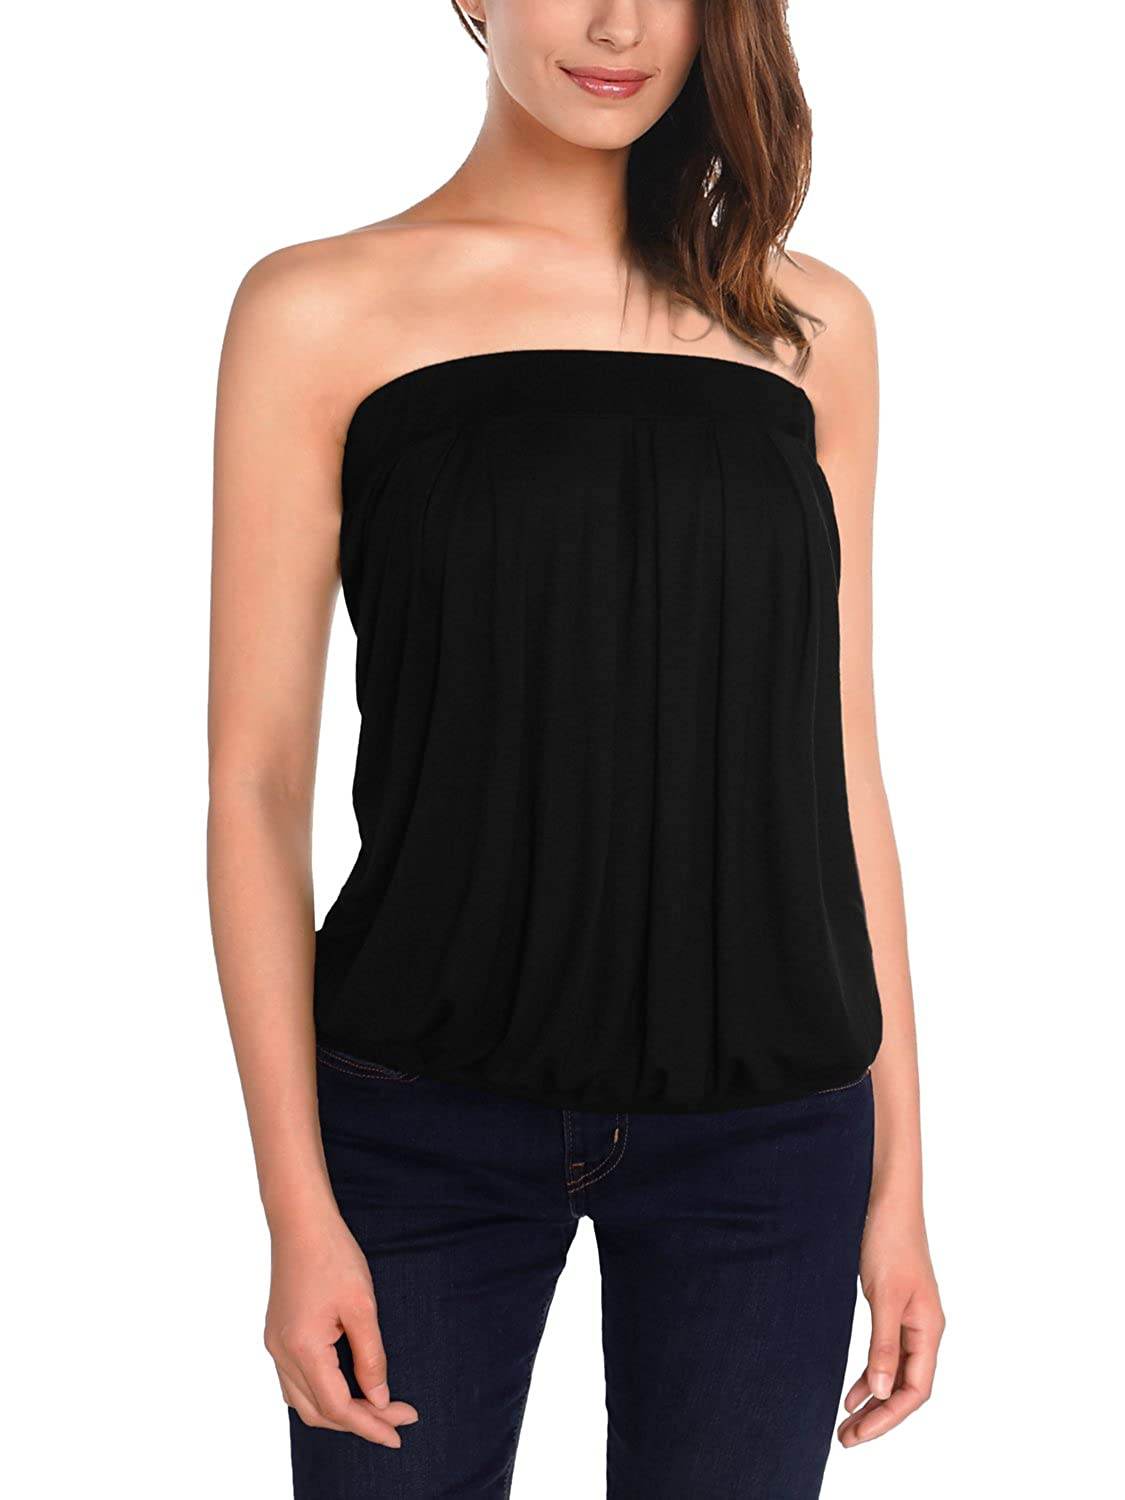 63be69aea6 DJT Womens Printed Sleeveless Stretchy Pleated Tube Top  Amazon.ca   Clothing   Accessories